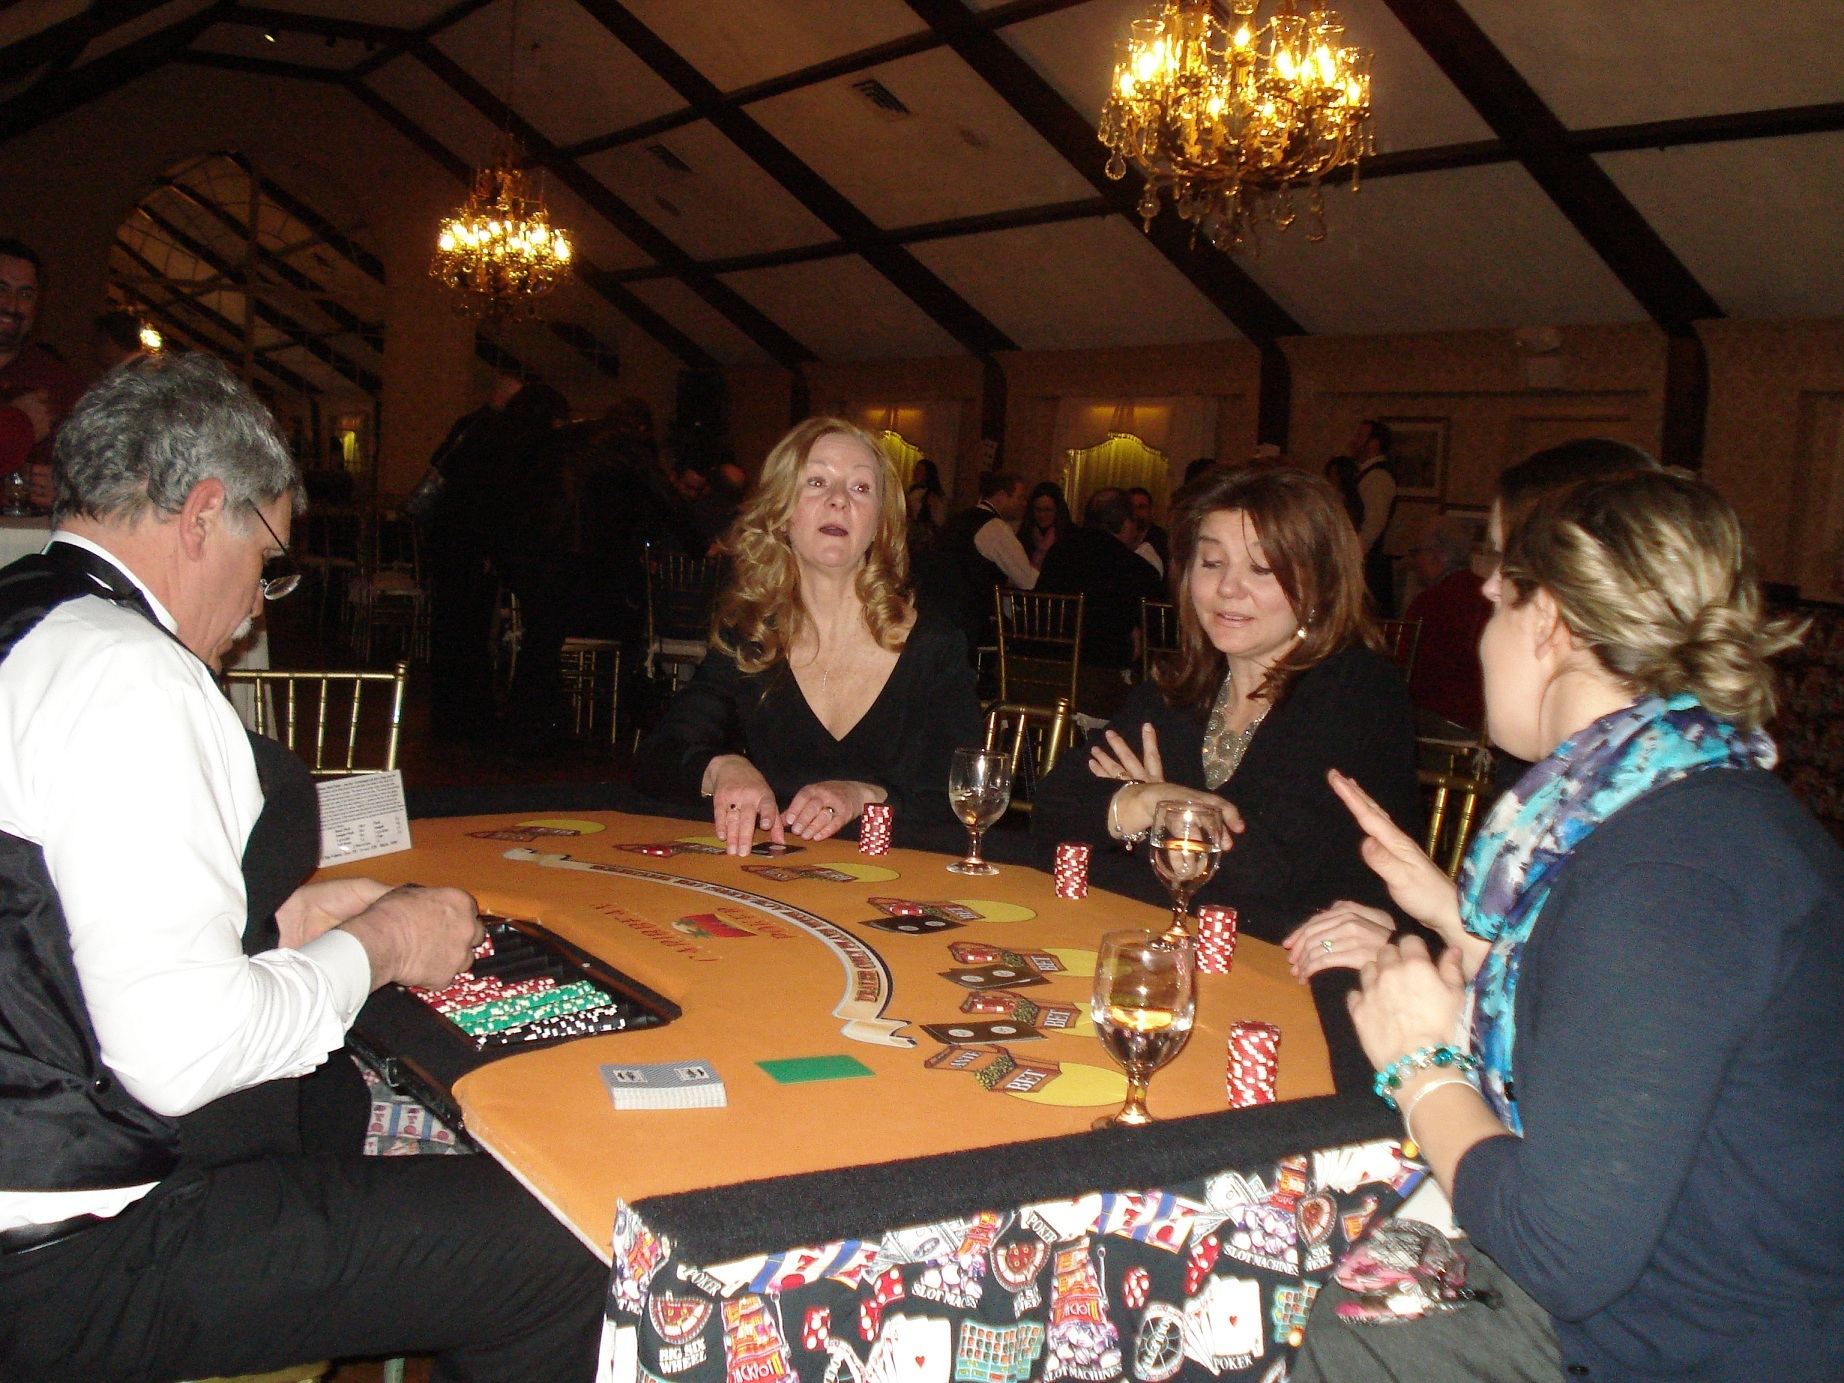 a84a1d18732047091652_Casino_Night_008.JPG